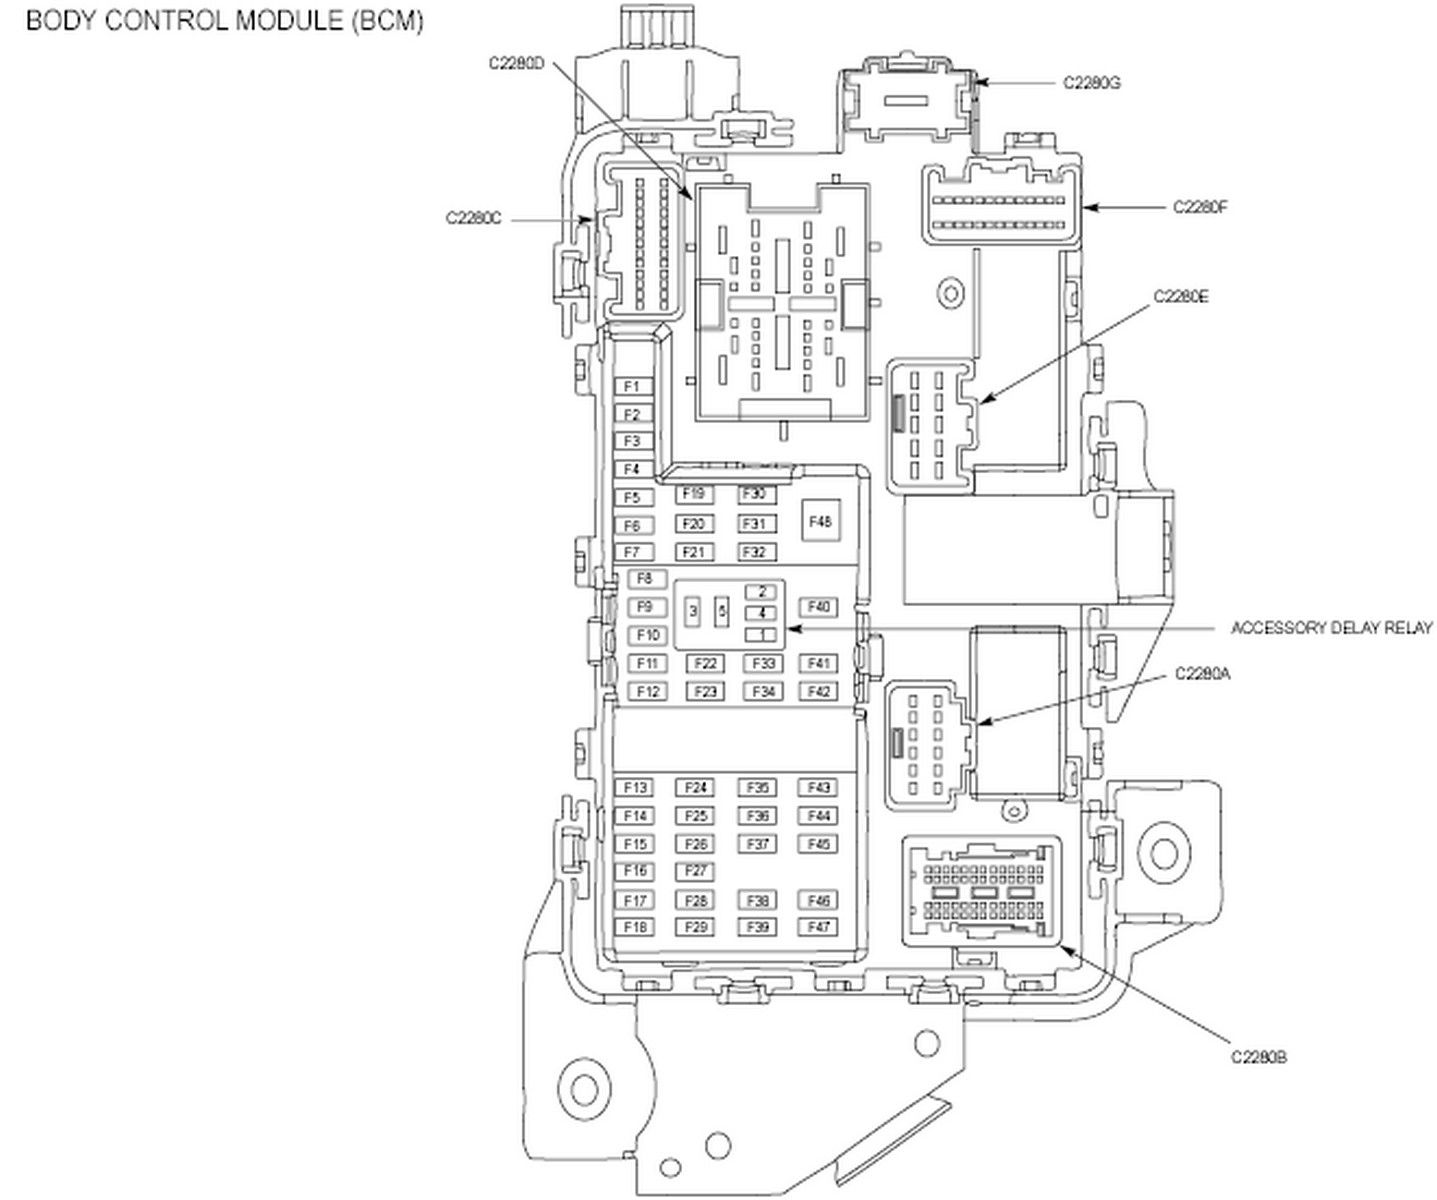 2011 ford f450 wiring diagram 2011 discover your wiring diagram truck running light wiring 2011 ford f450 wiring diagram as well as ford super duty